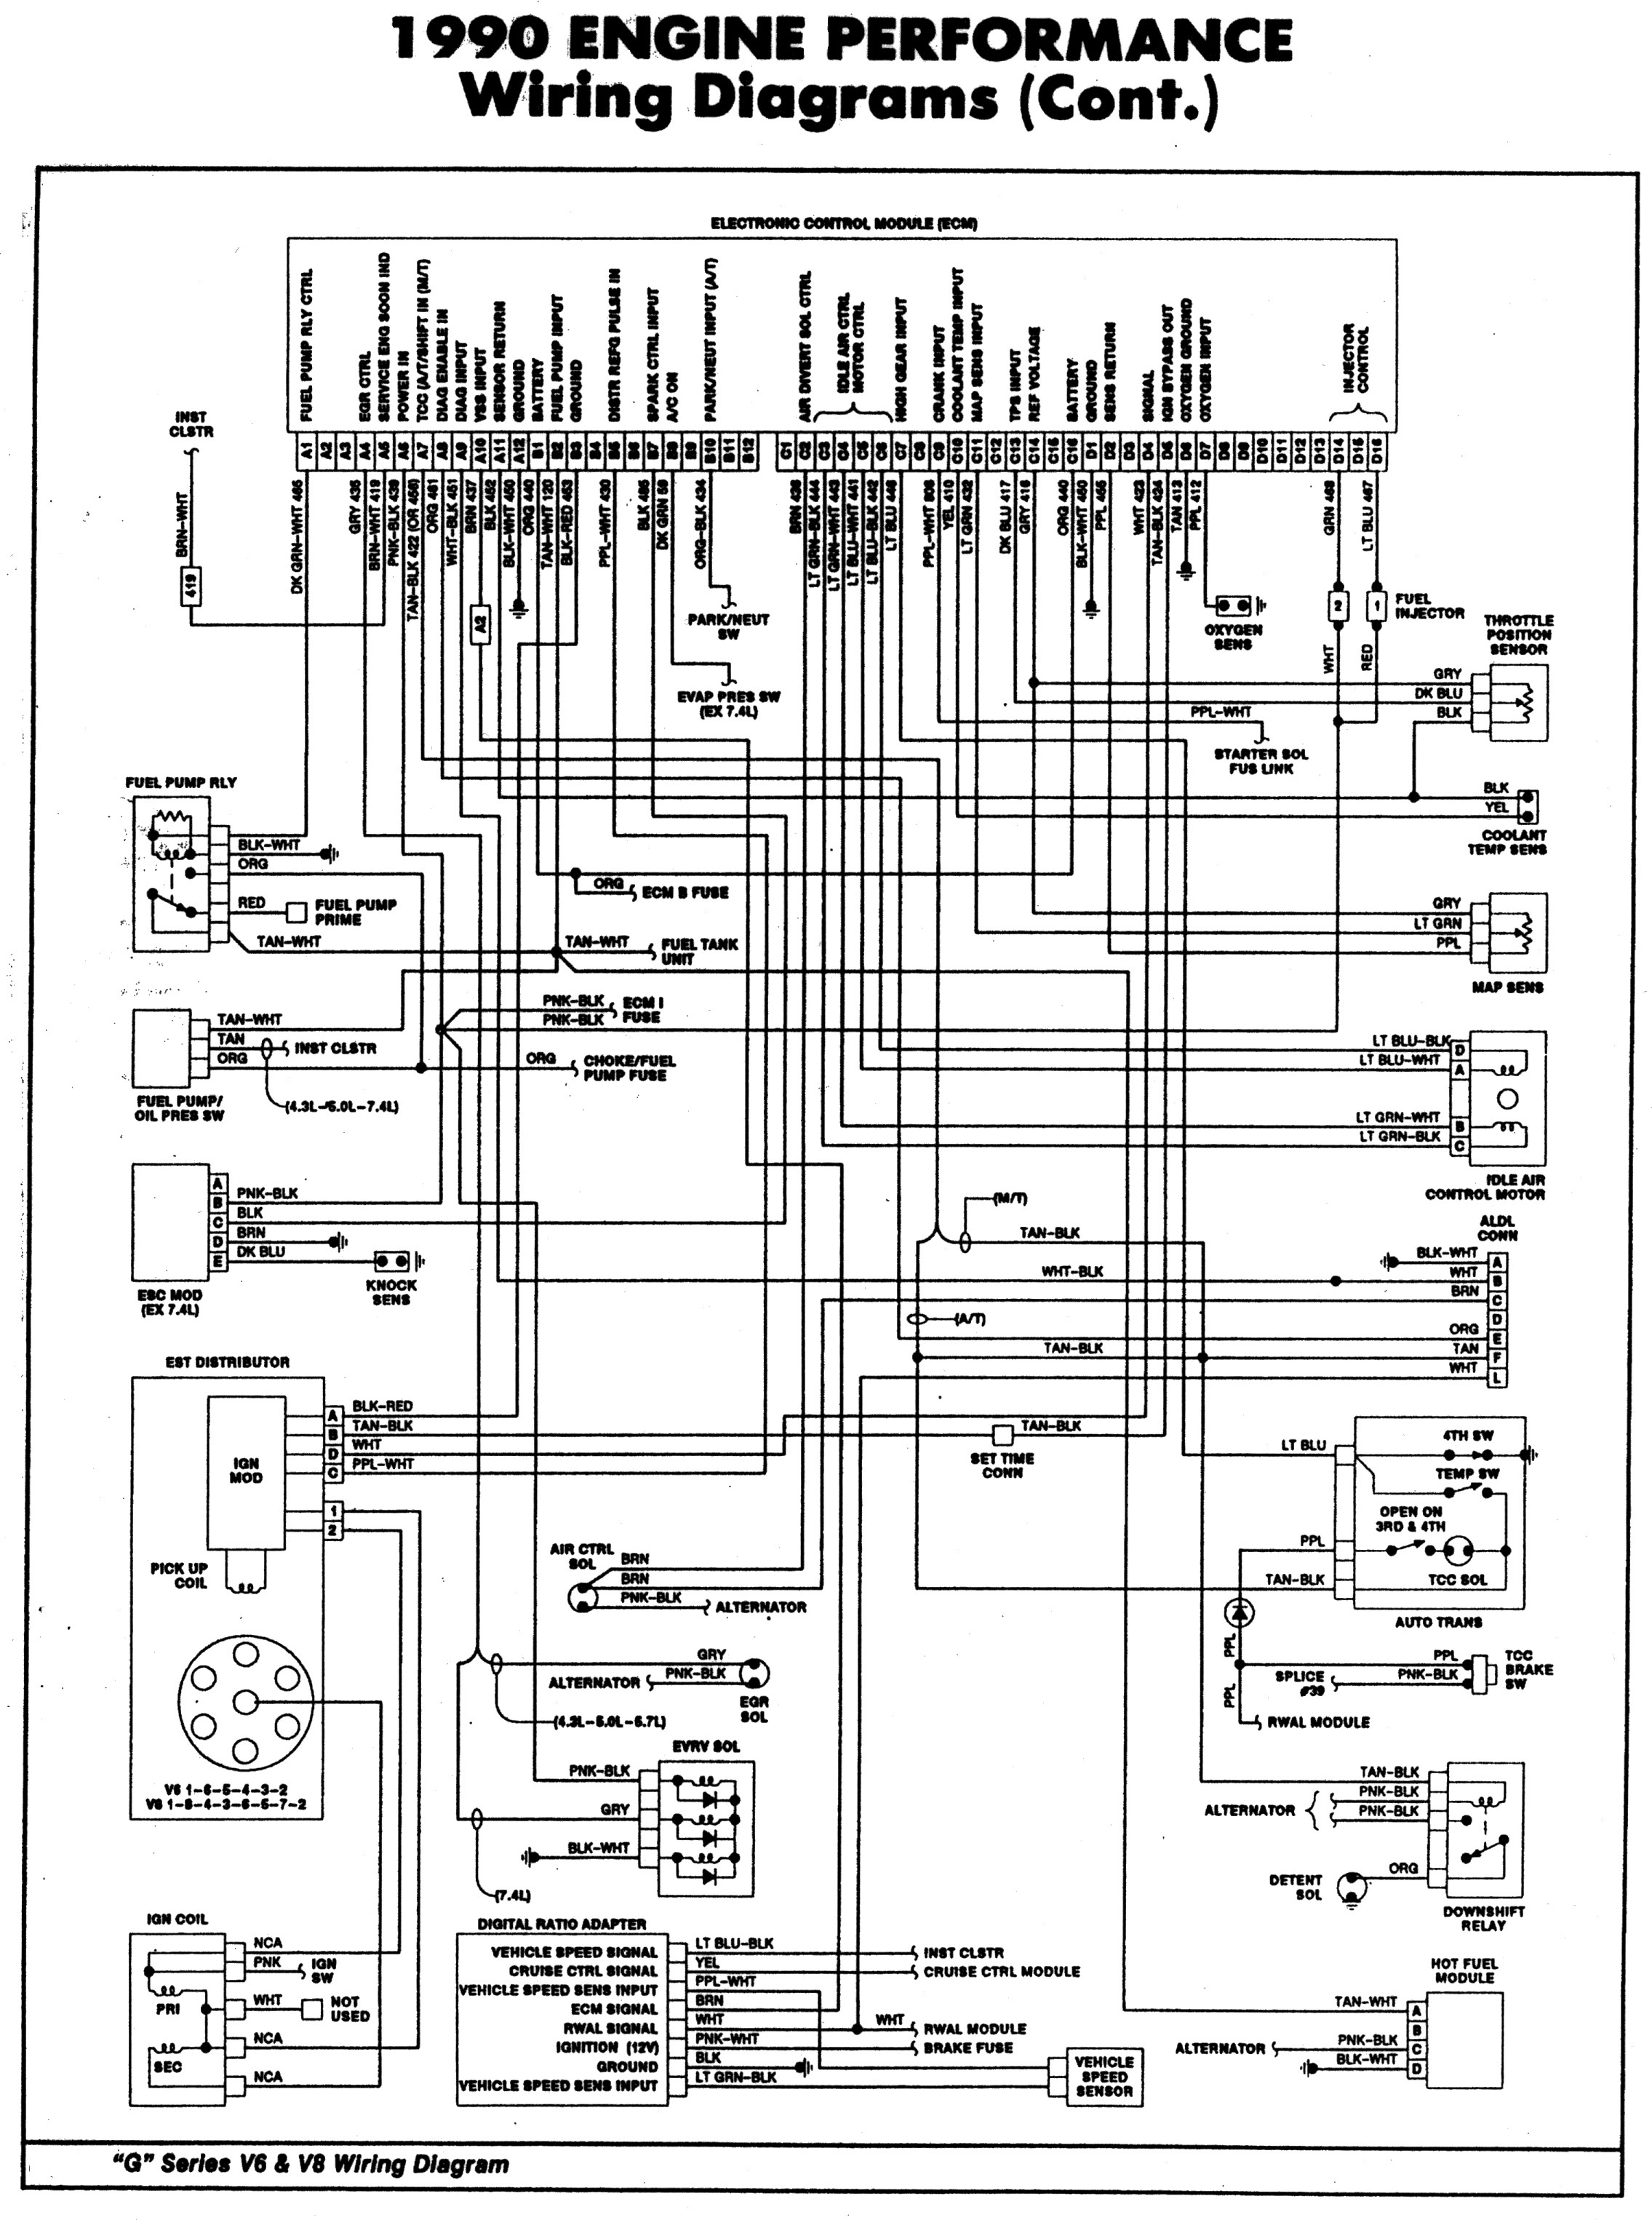 medium resolution of wrg 1641 psl 2000 smoke detector wiring diagram 1990 chevy wiring diagram wiring diagram schematics